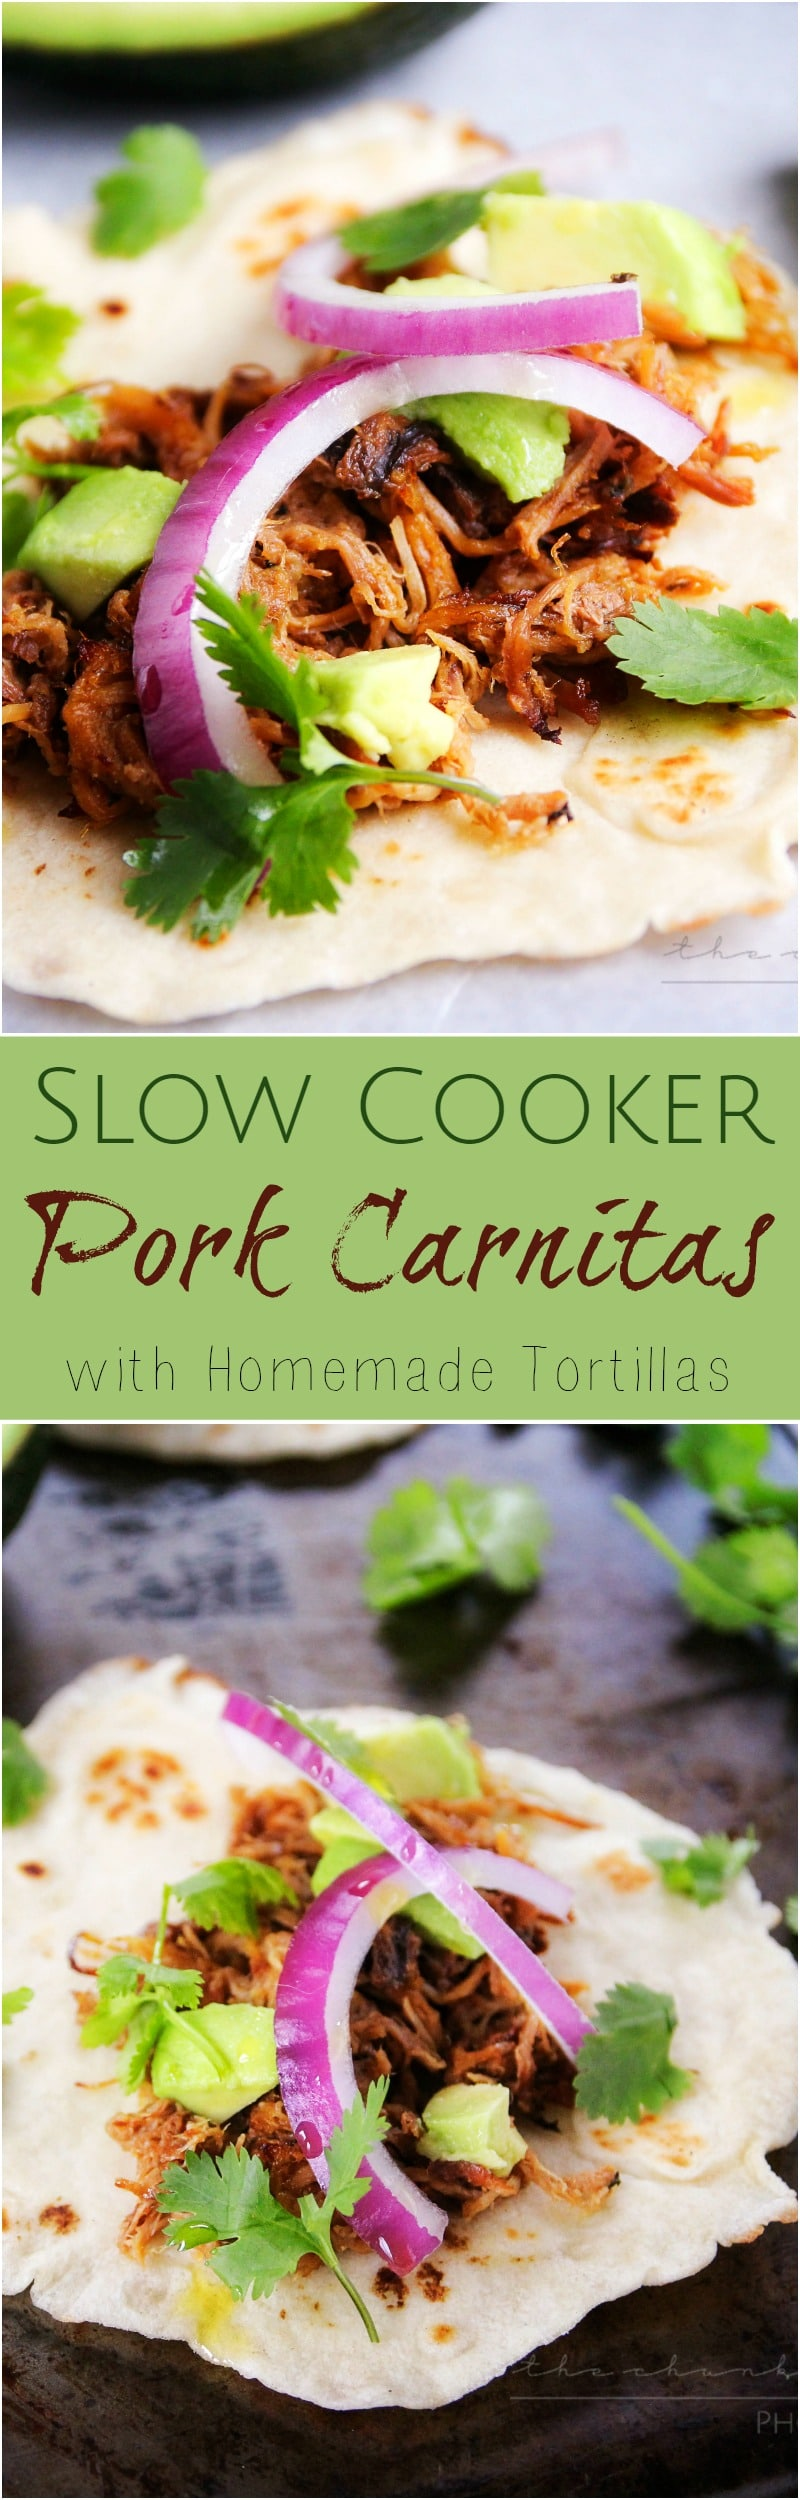 Slow Cooker Pork Carnitas   The Chunky Chef   The amazing combination of spices and citrus make these slow cooker pork carnitas an absolute must try recipe!